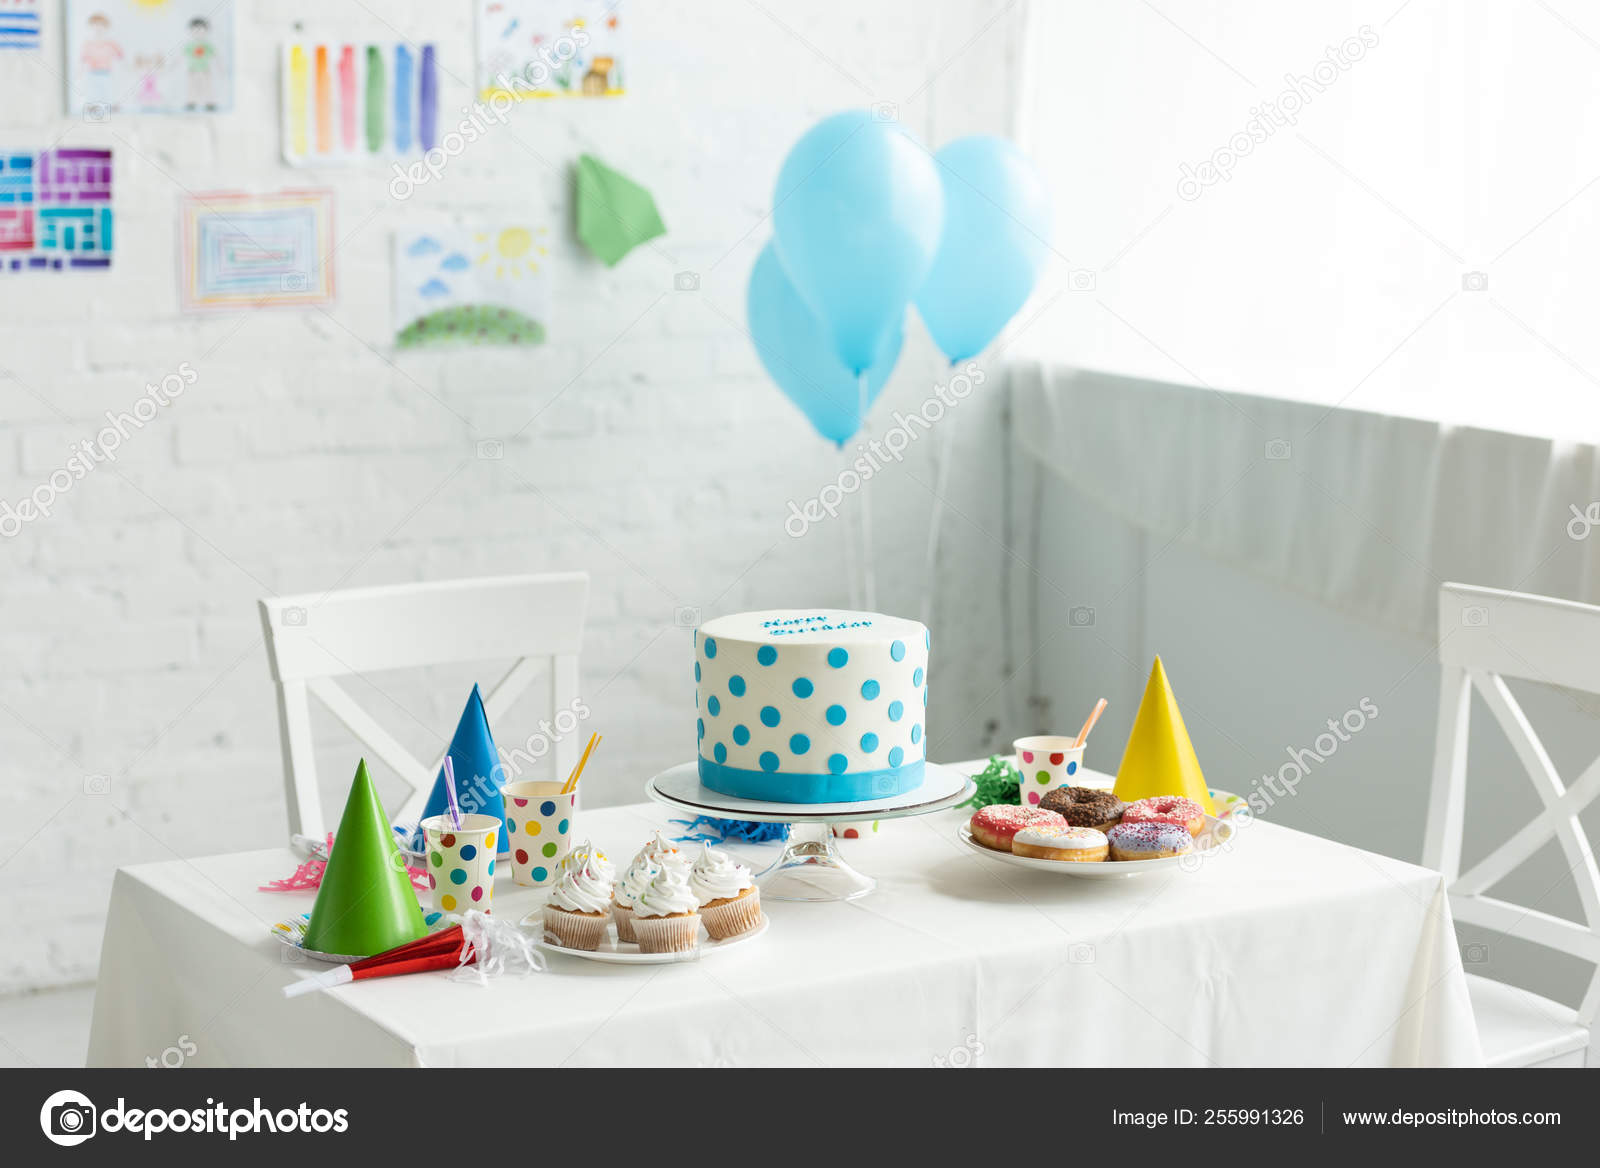 Festive Cake Party Caps Table Room Decorated Birthday Party Air